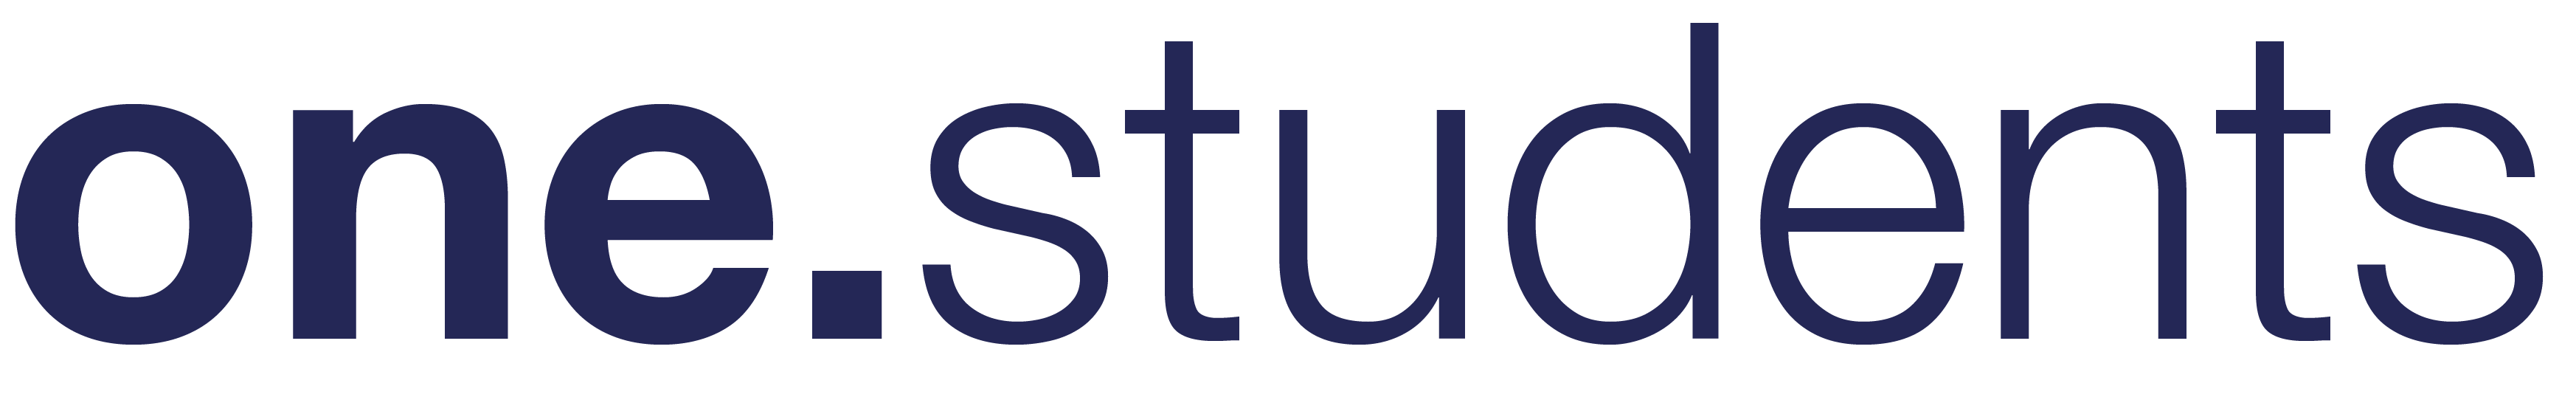 one students logo blue